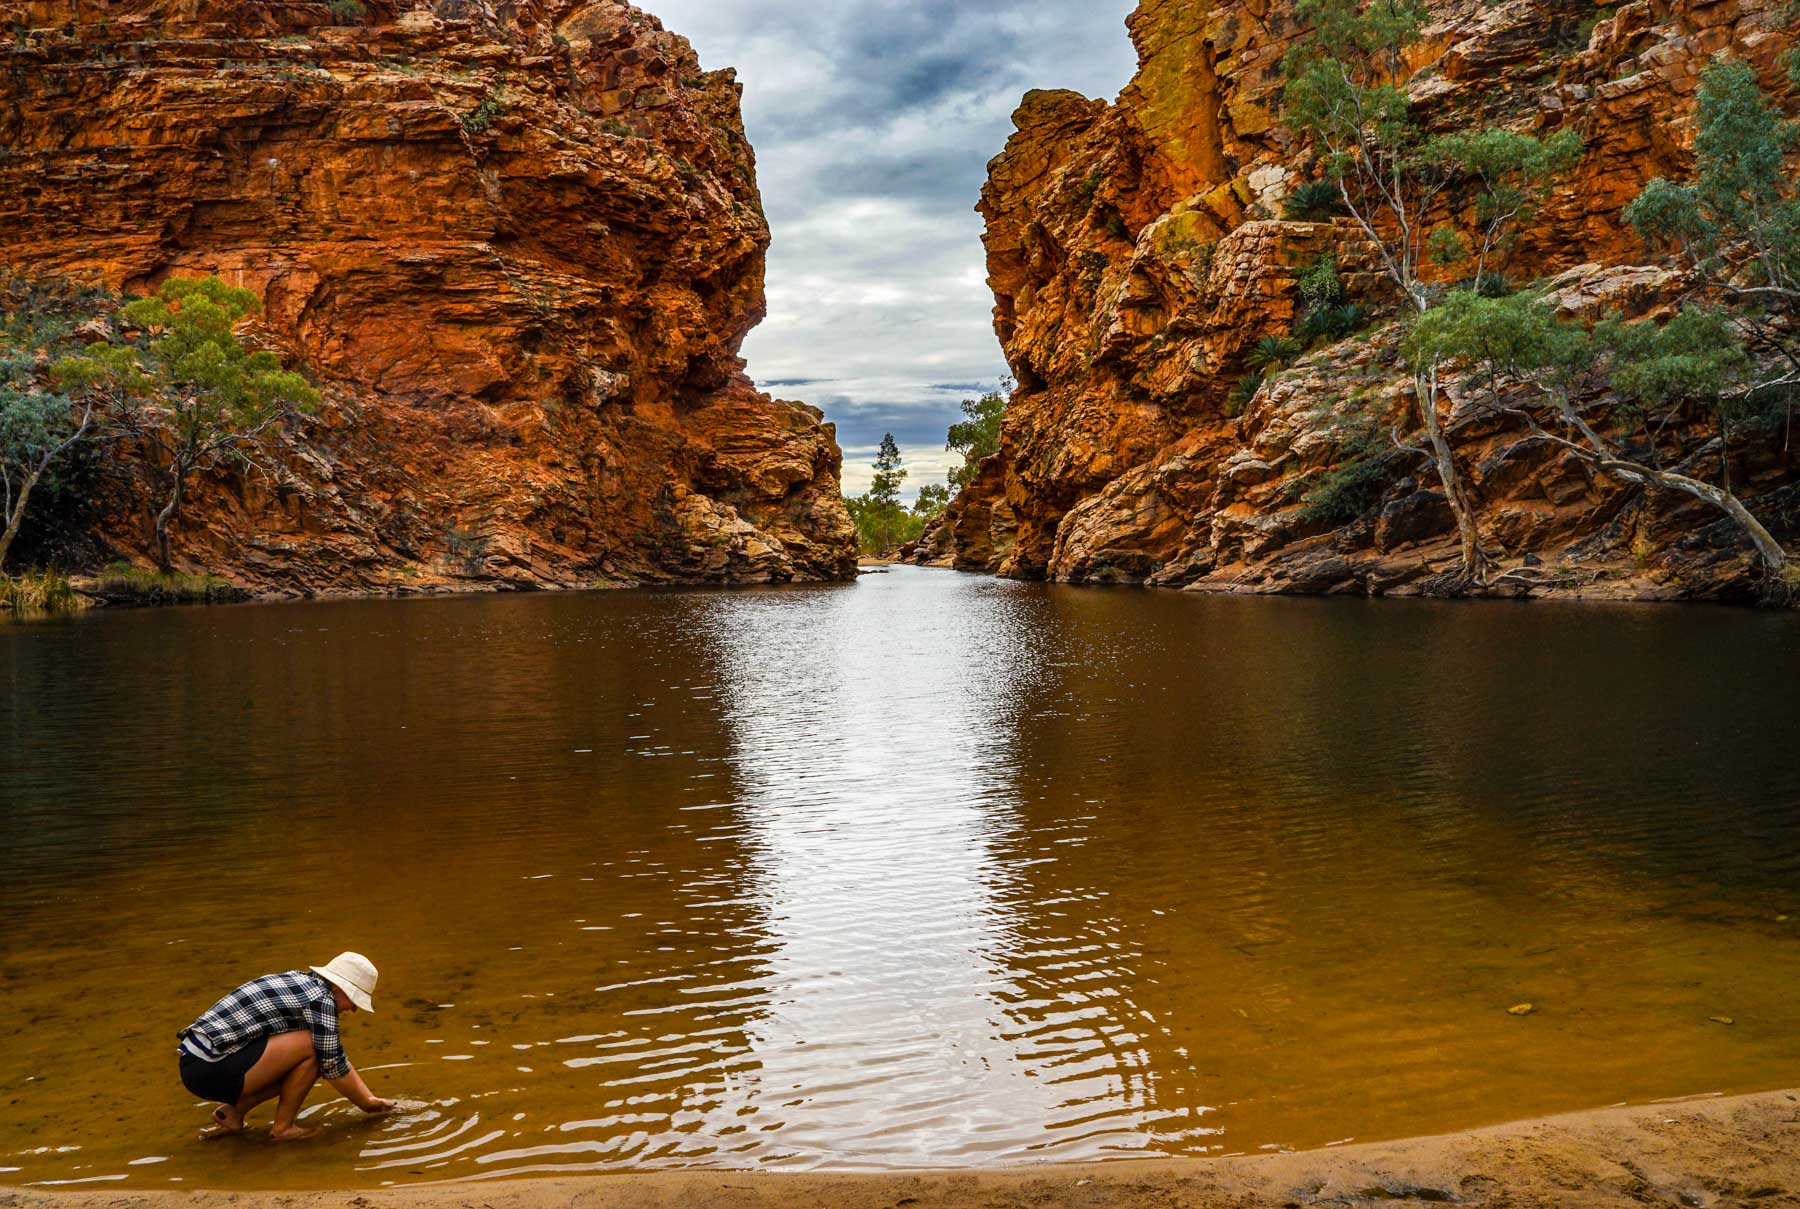 Ellery Creek Big Hole is an awesome spot for a swim and to soak your feet in some cool water.